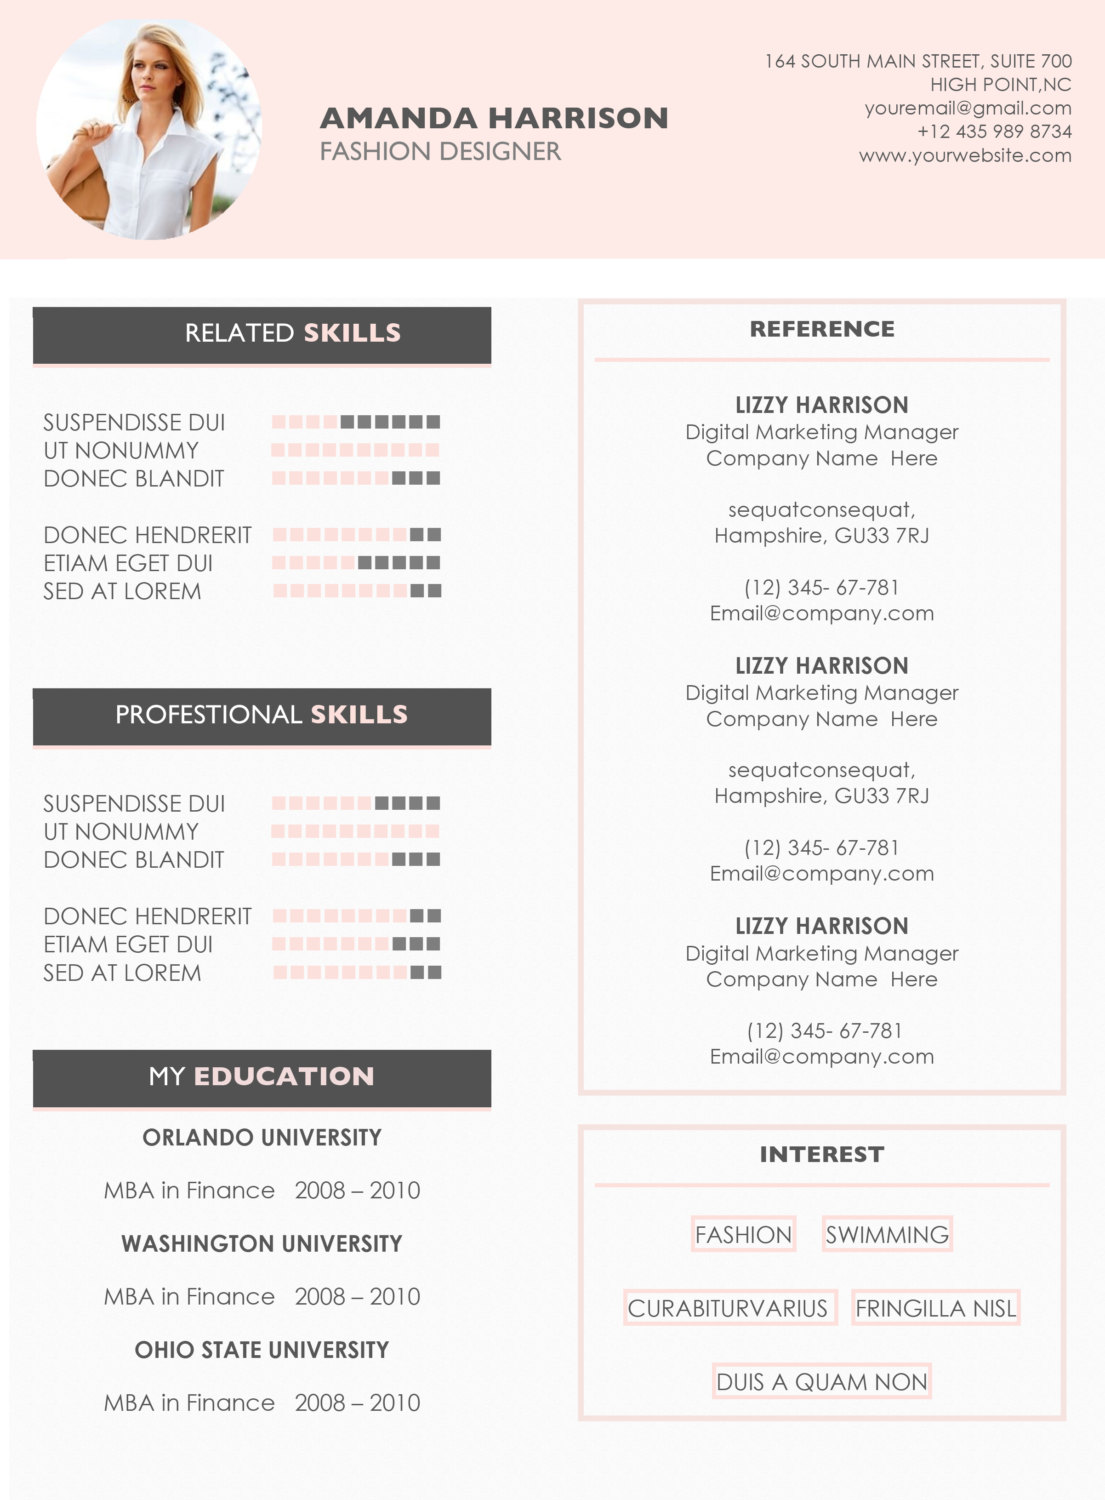 Resume / CV Template, Cover Letter for MS Word, Creative resume ...